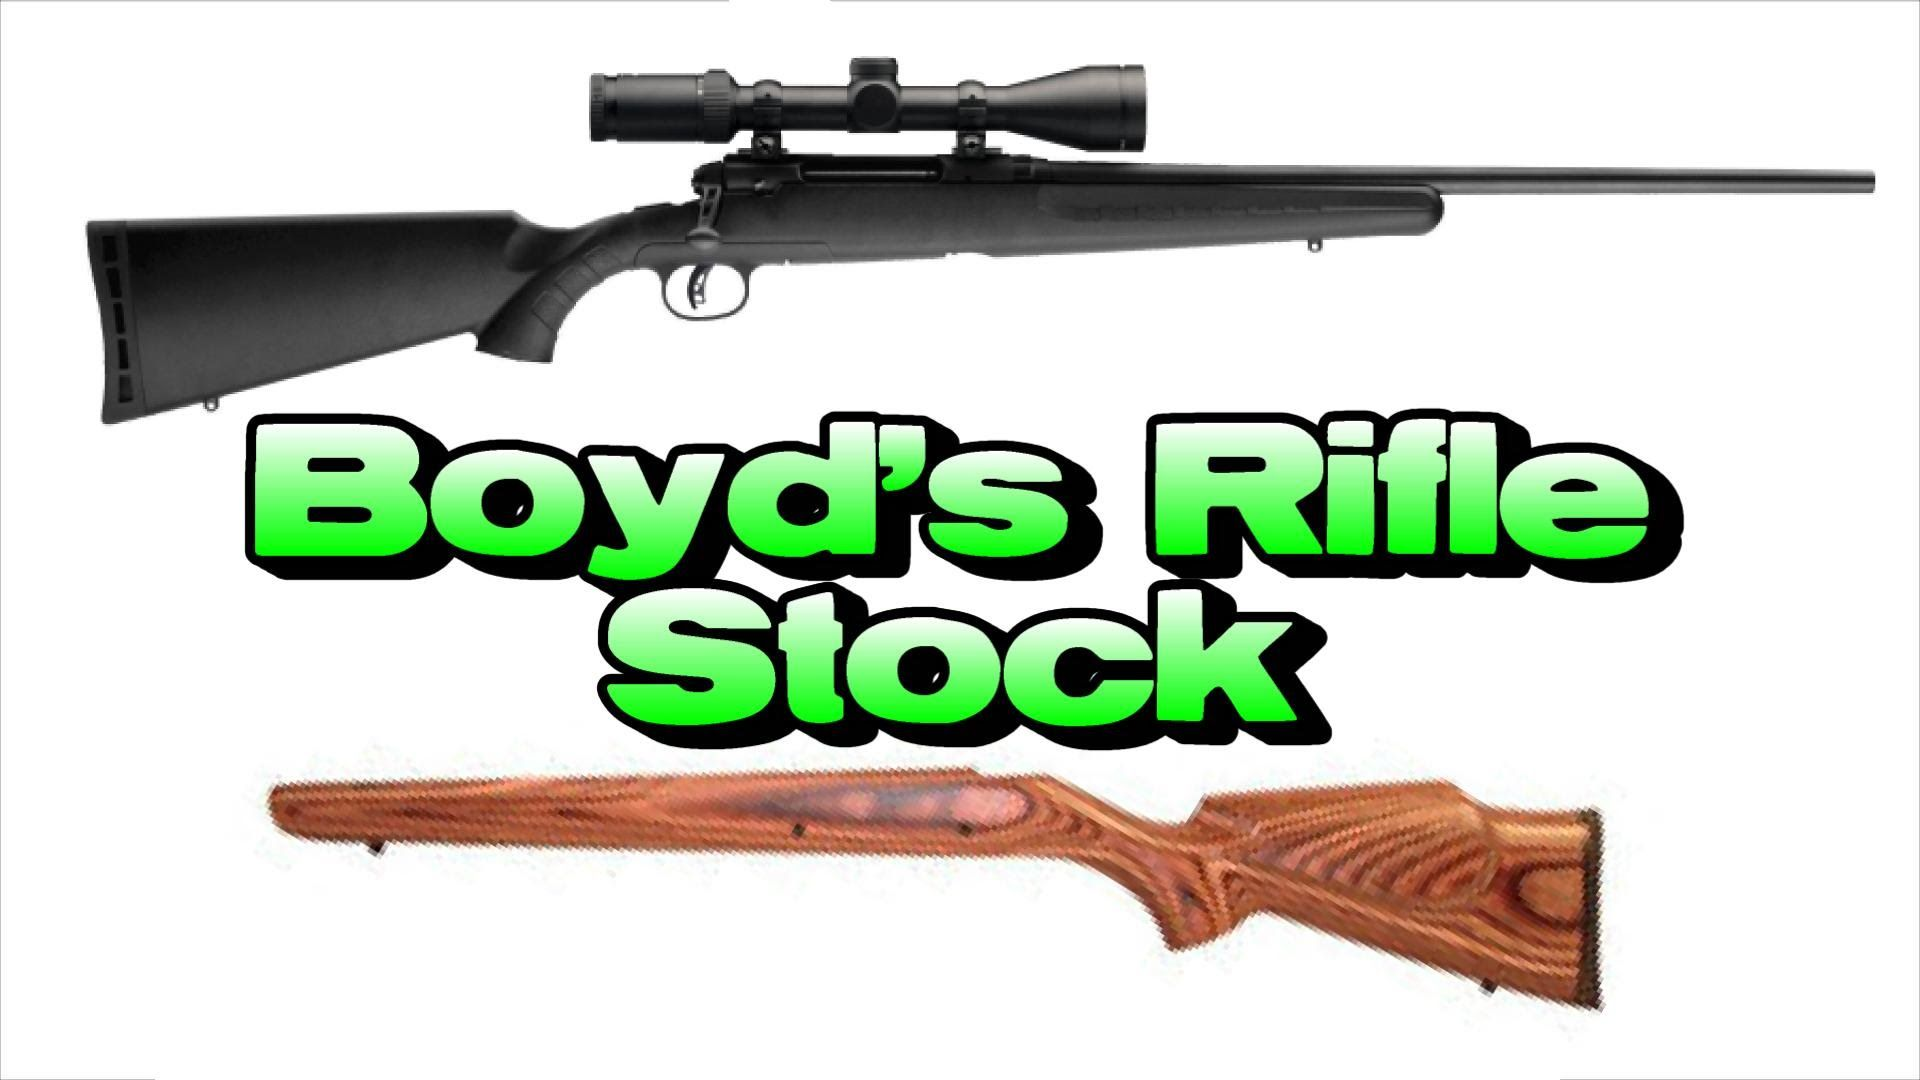 Boyds rifle stock review savage axisloading that